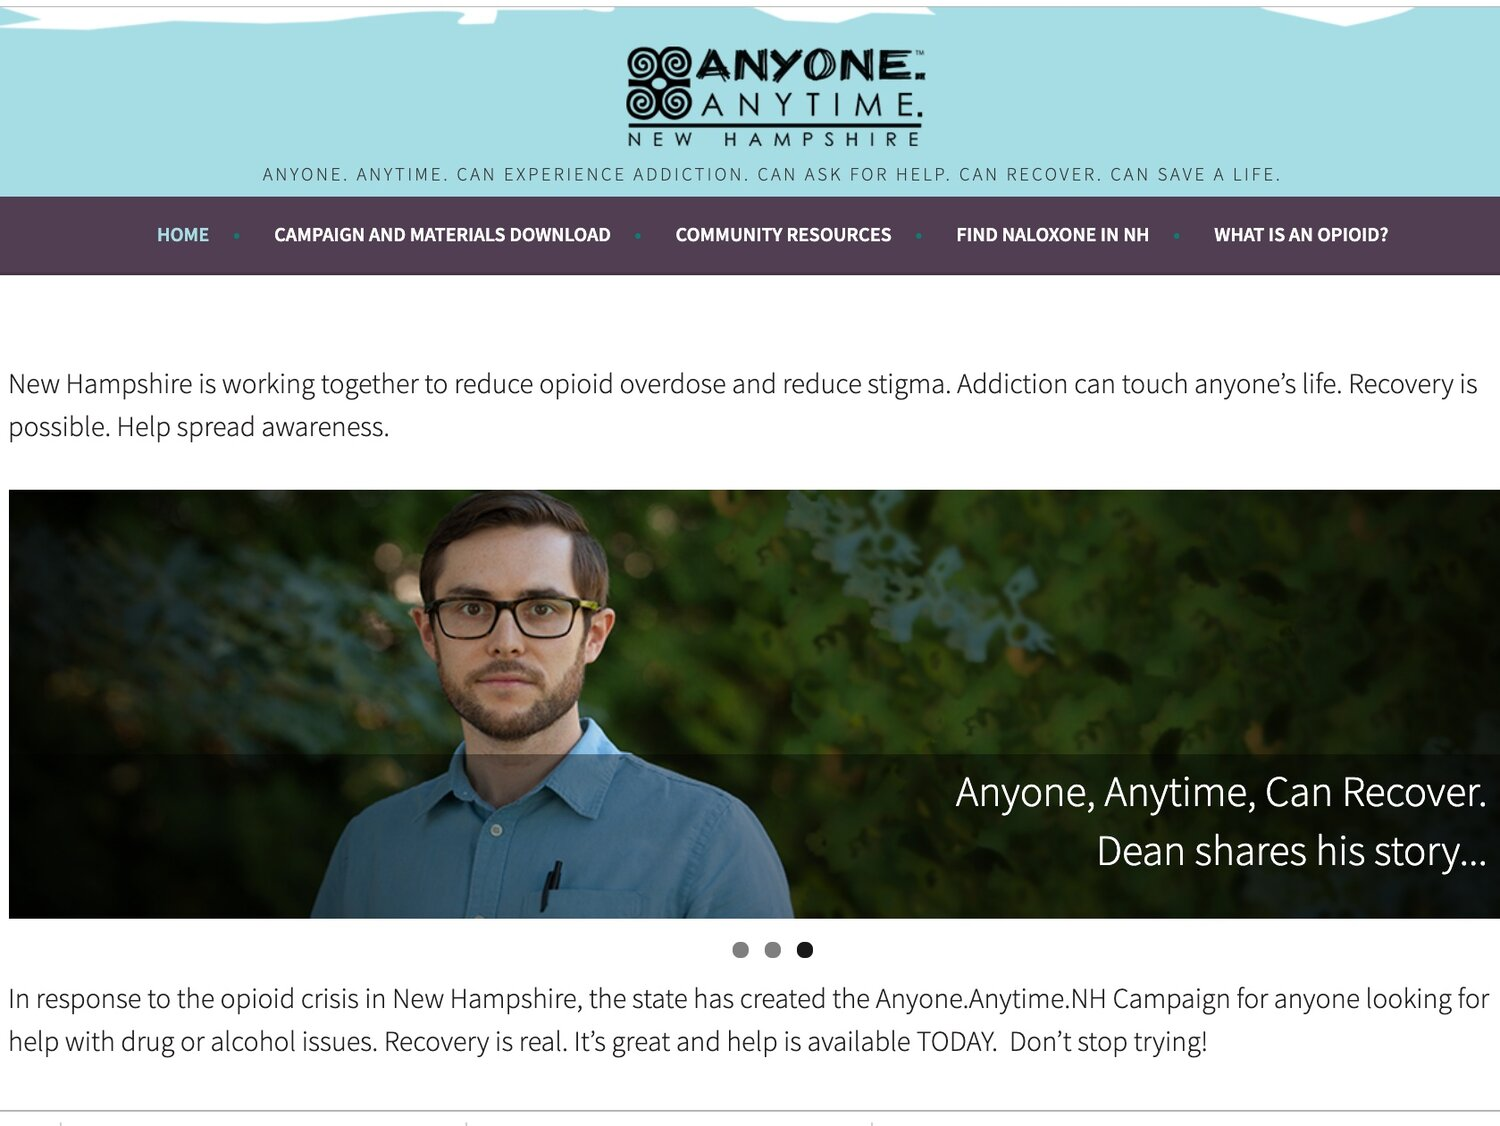 anyone, anytime - In response to the opioid crisis in New Hampshire, the state has created the Anyone.Anytime.NH Campaign for anyone looking for help with drug or alcohol issues.